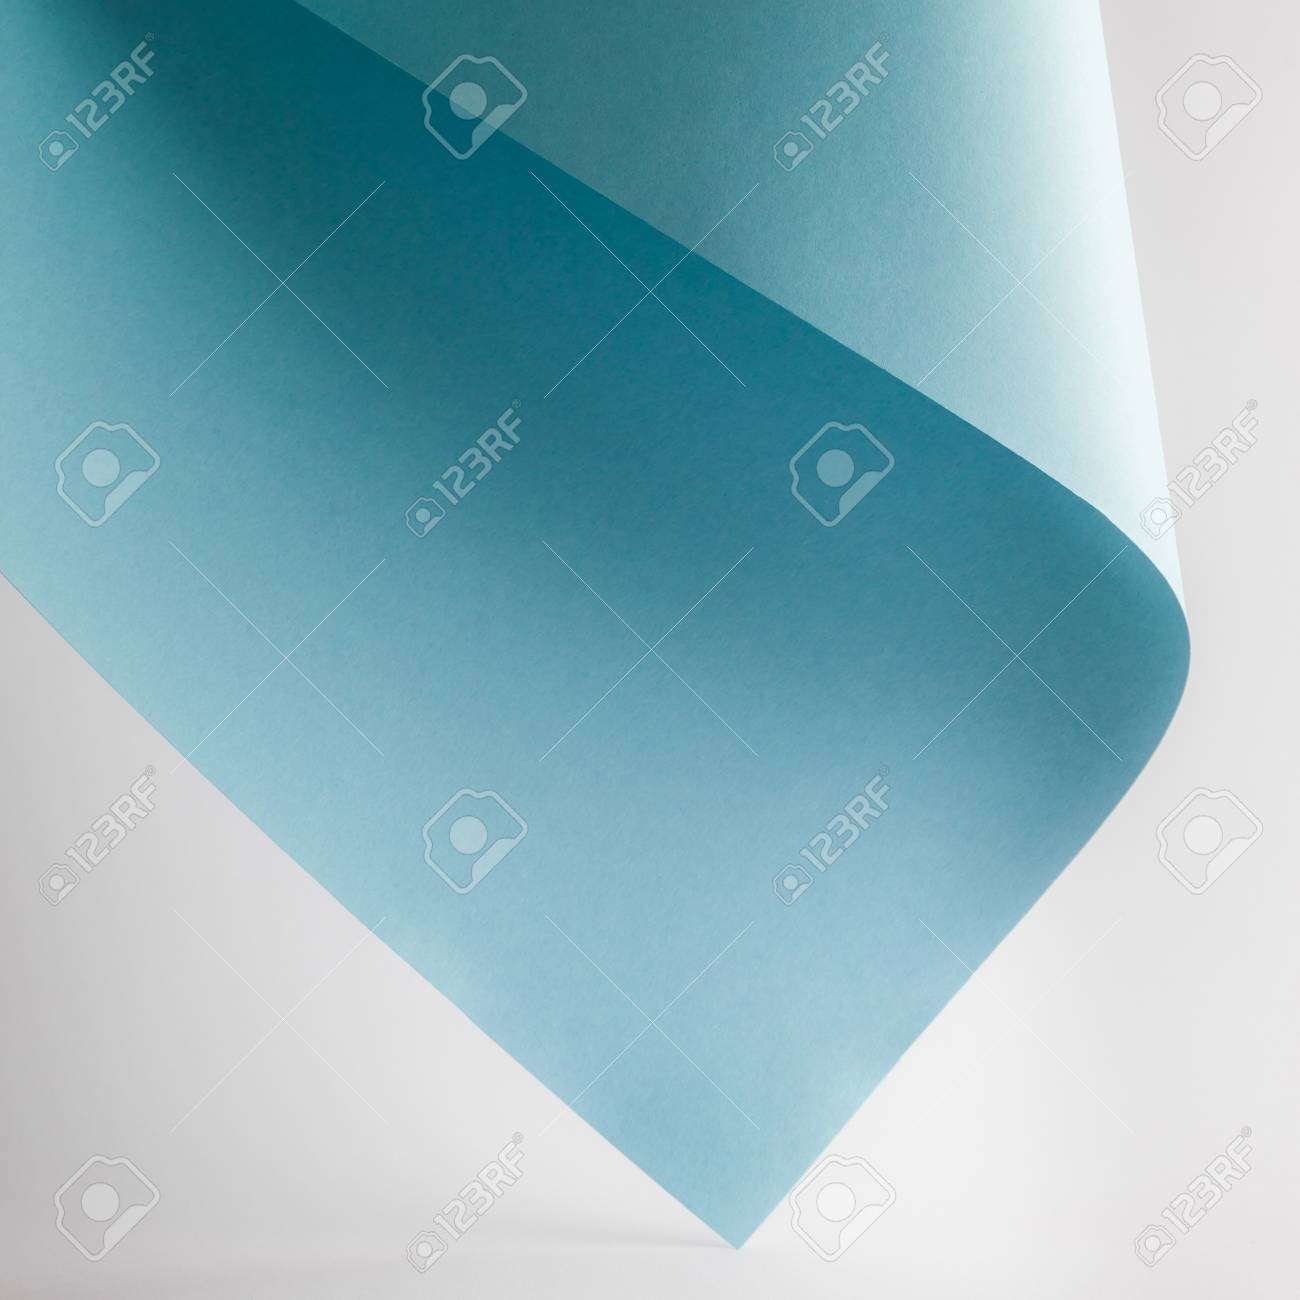 colored blue paper sheet on grey background - 106603339